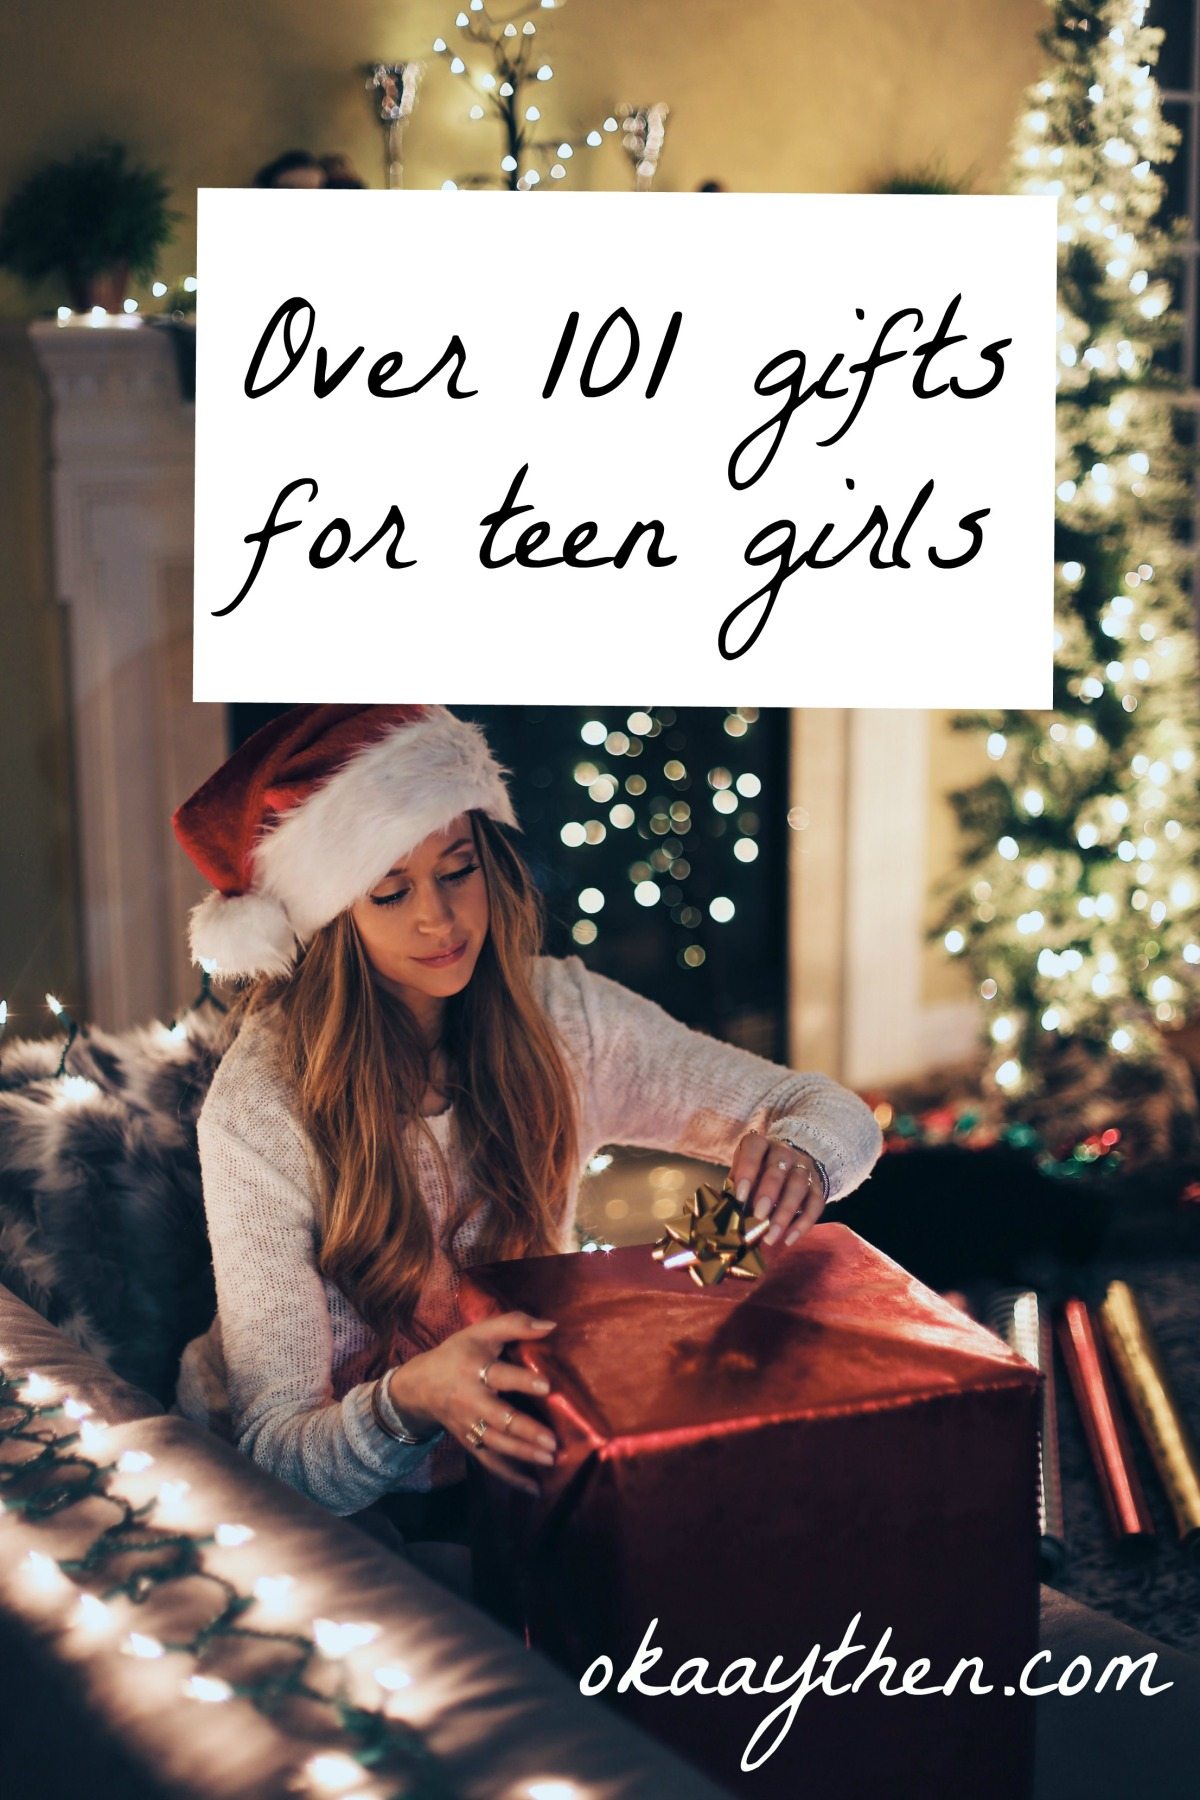 A brilliant list of over 100 gift ideas for teen girls, absolutely perfect for birthdays and Christmas!